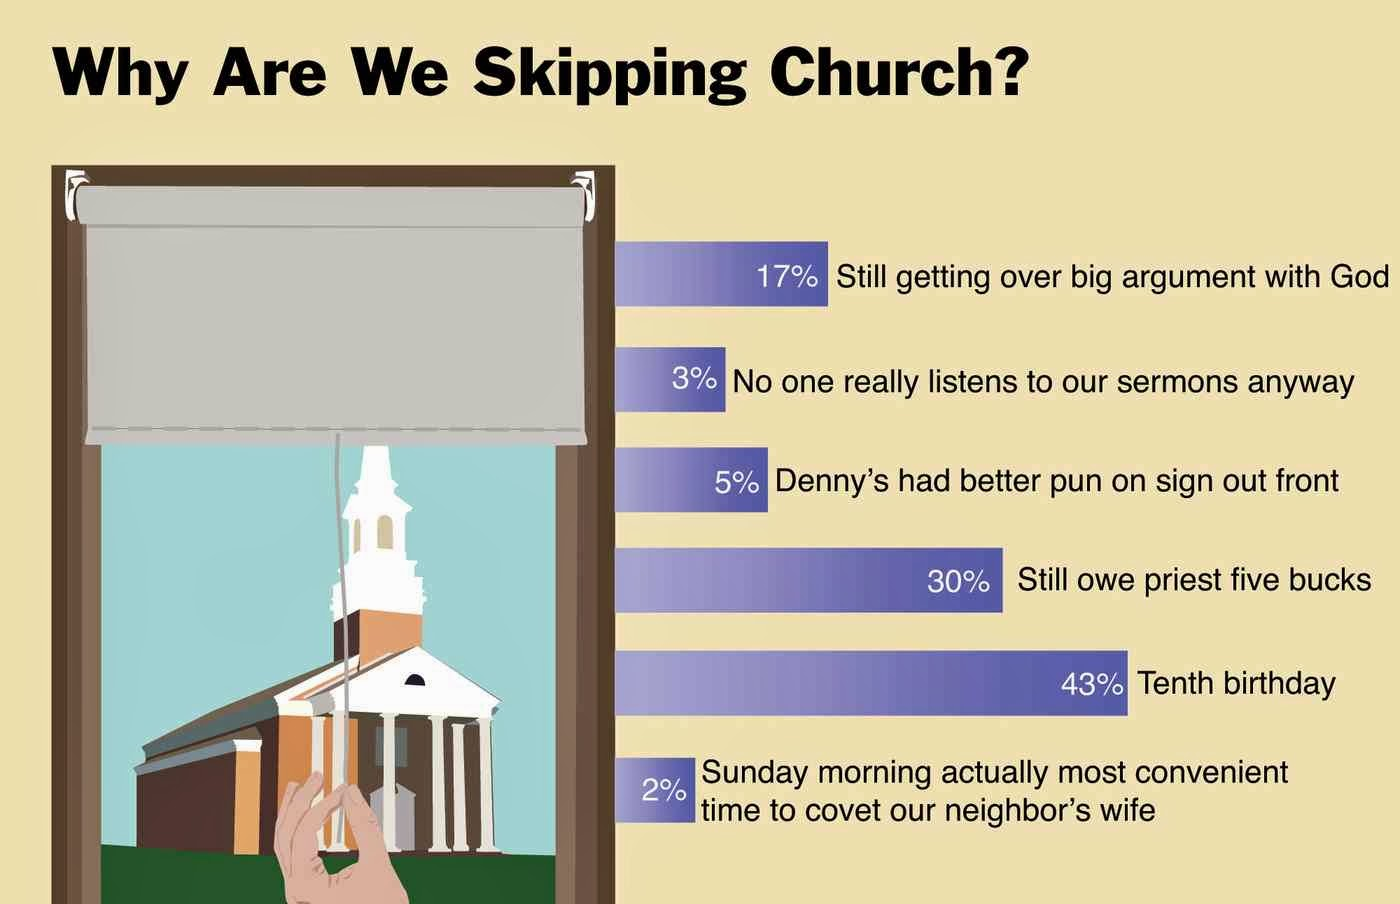 Why not go to church 99